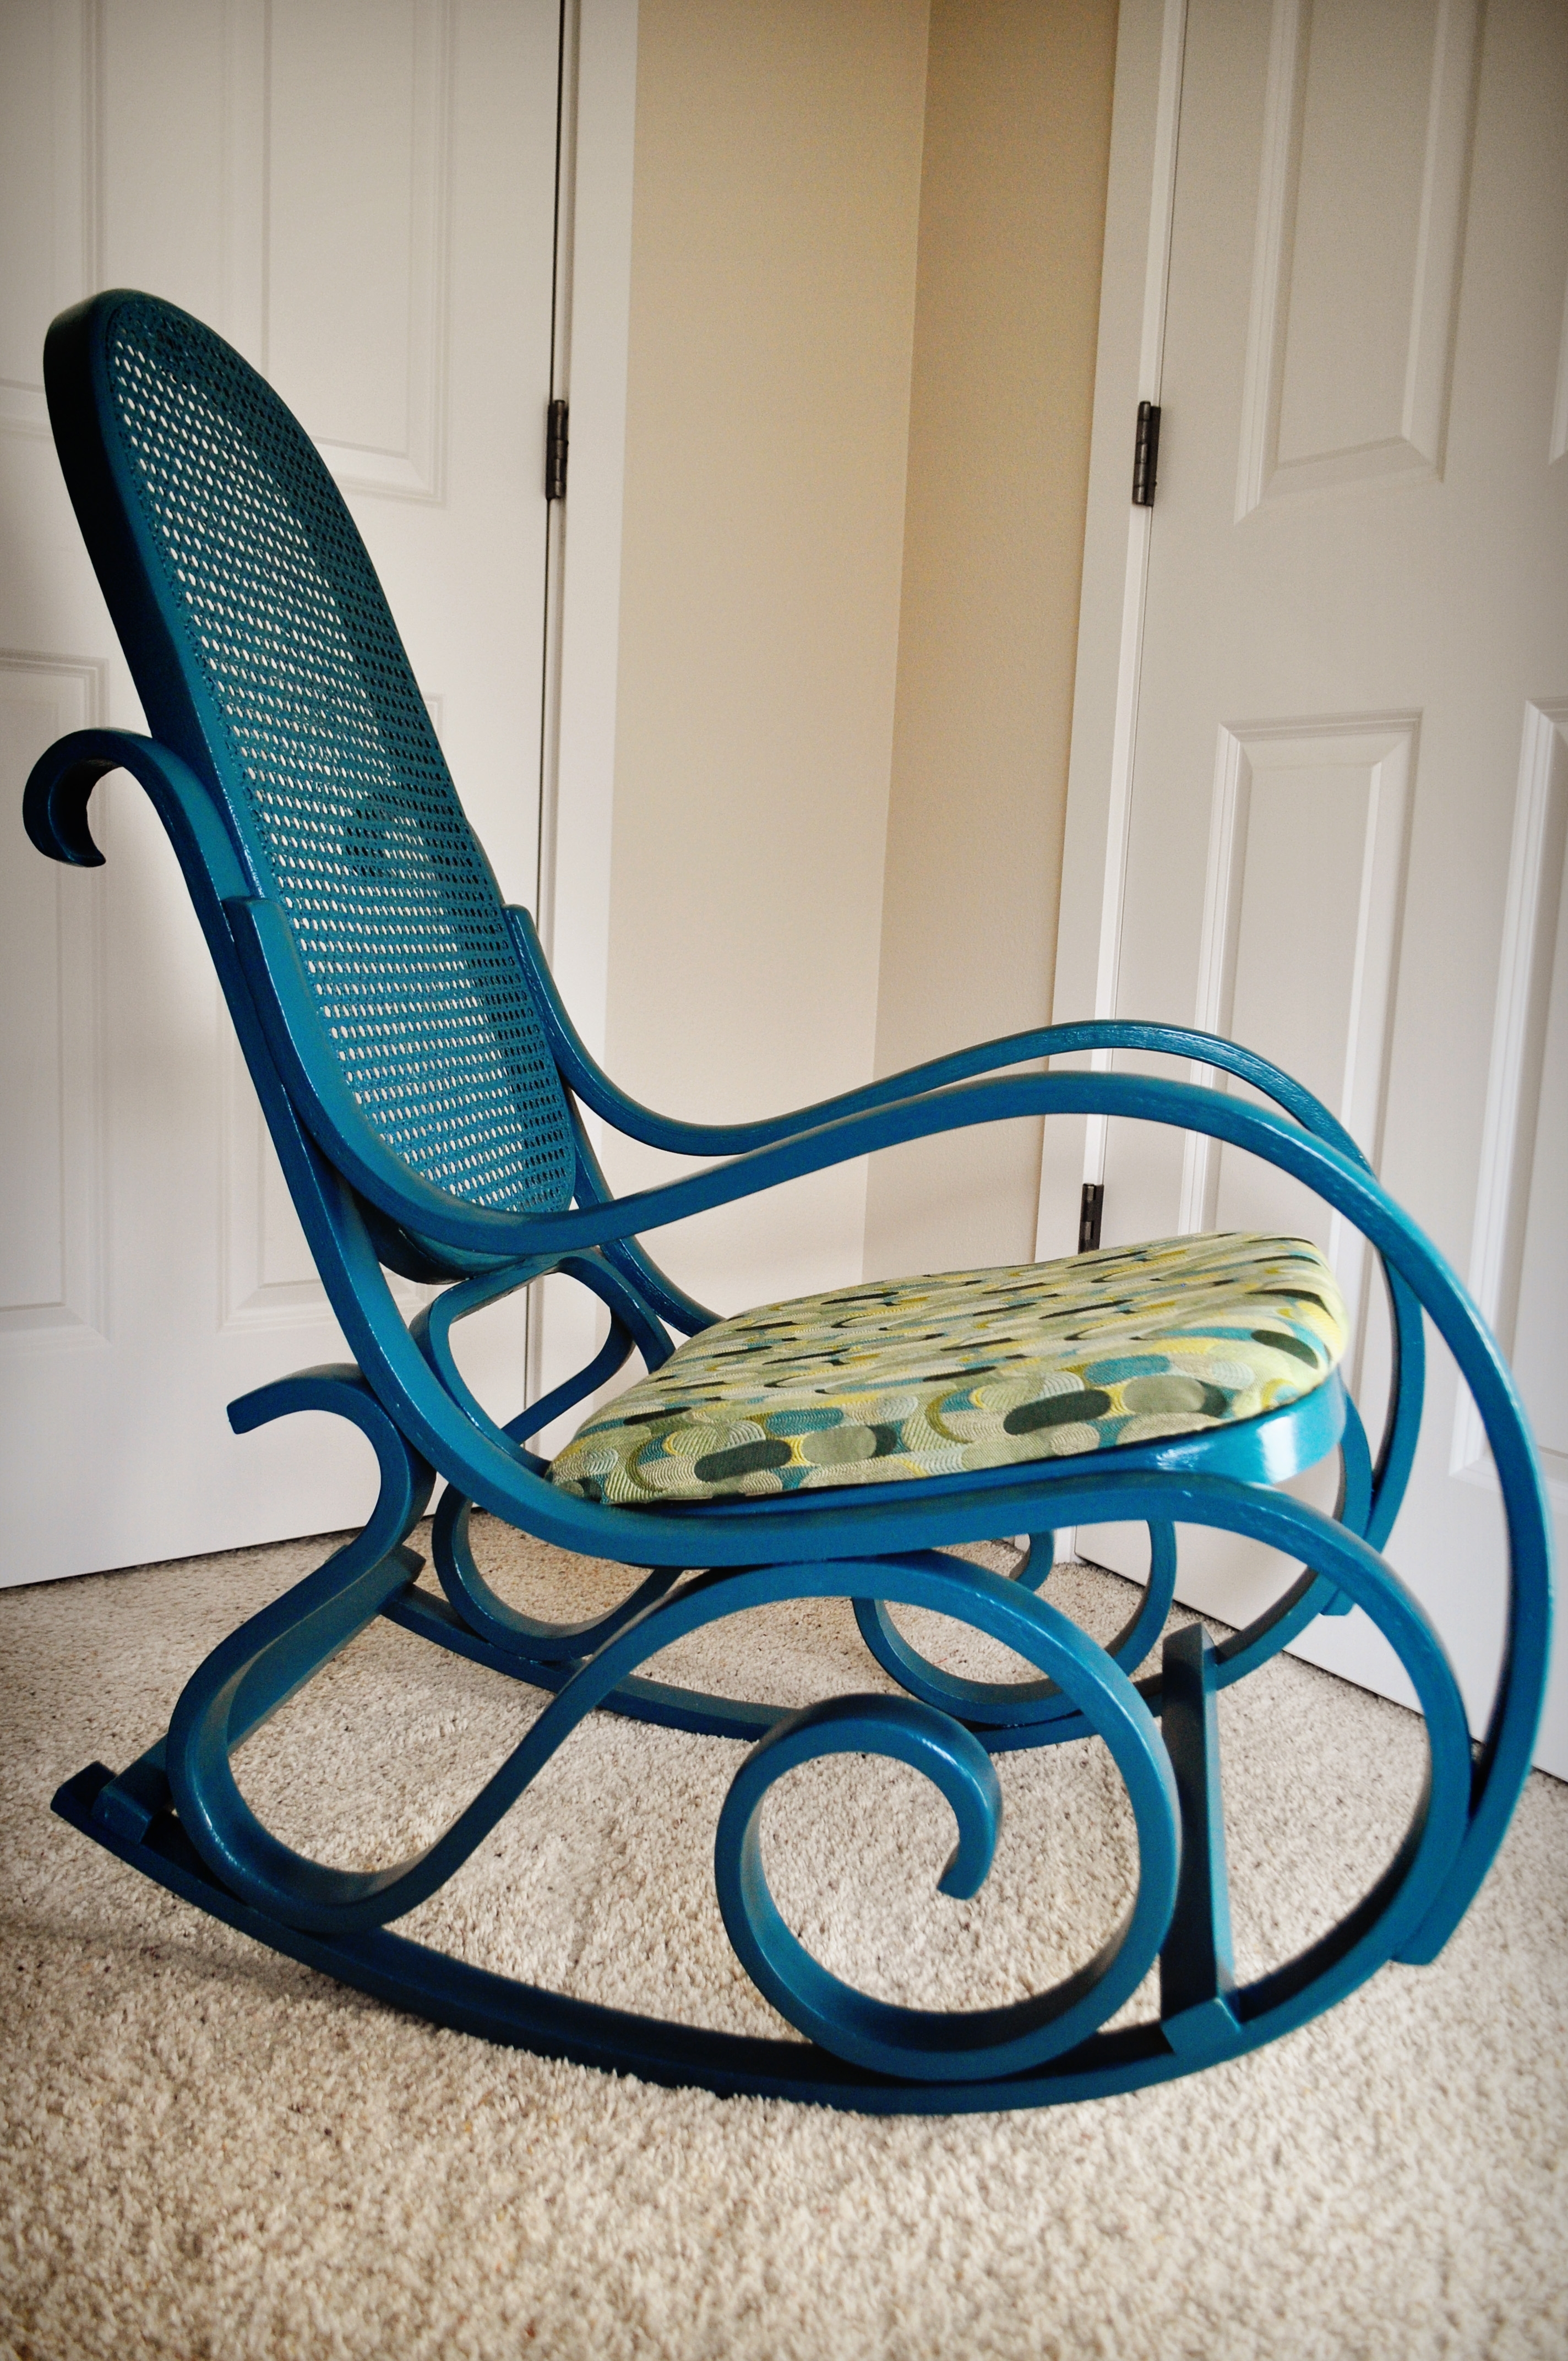 Fashionable Antique Wicker Rocking Chairs Regarding Furniture: Antique Wicker Rocking Chair Design (View 9 of 15)